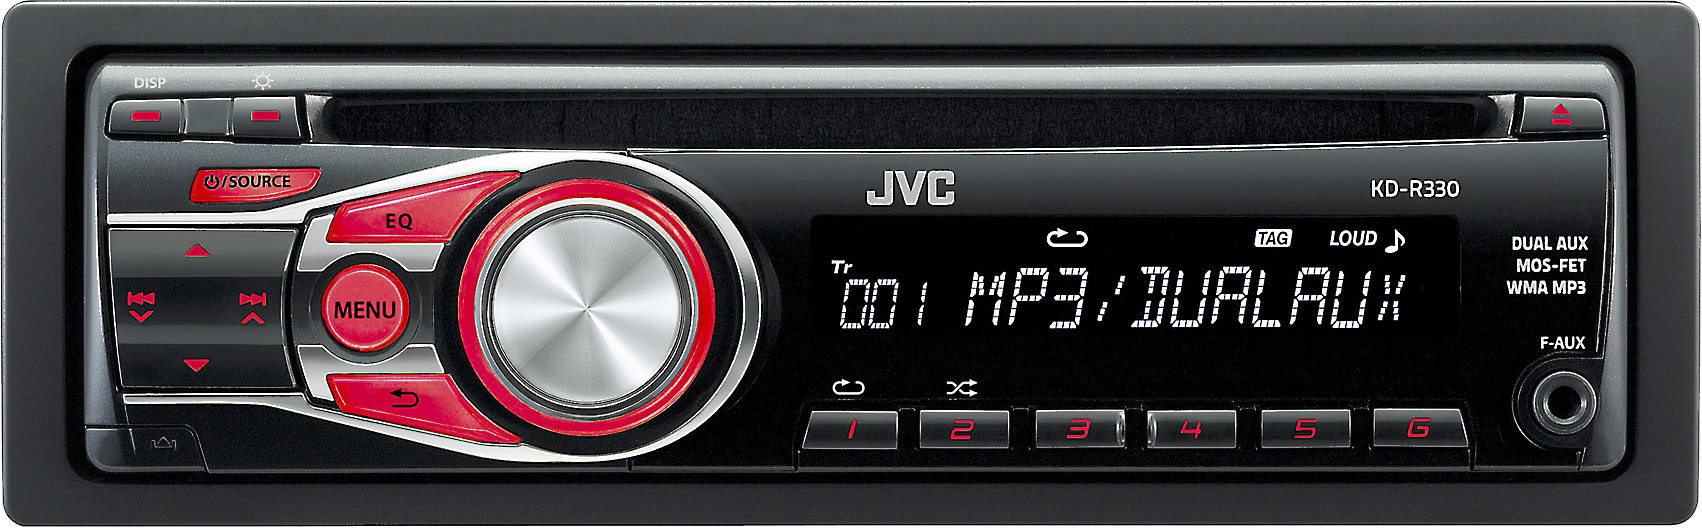 hight resolution of car stereo jvc kd r330 wiring diagram